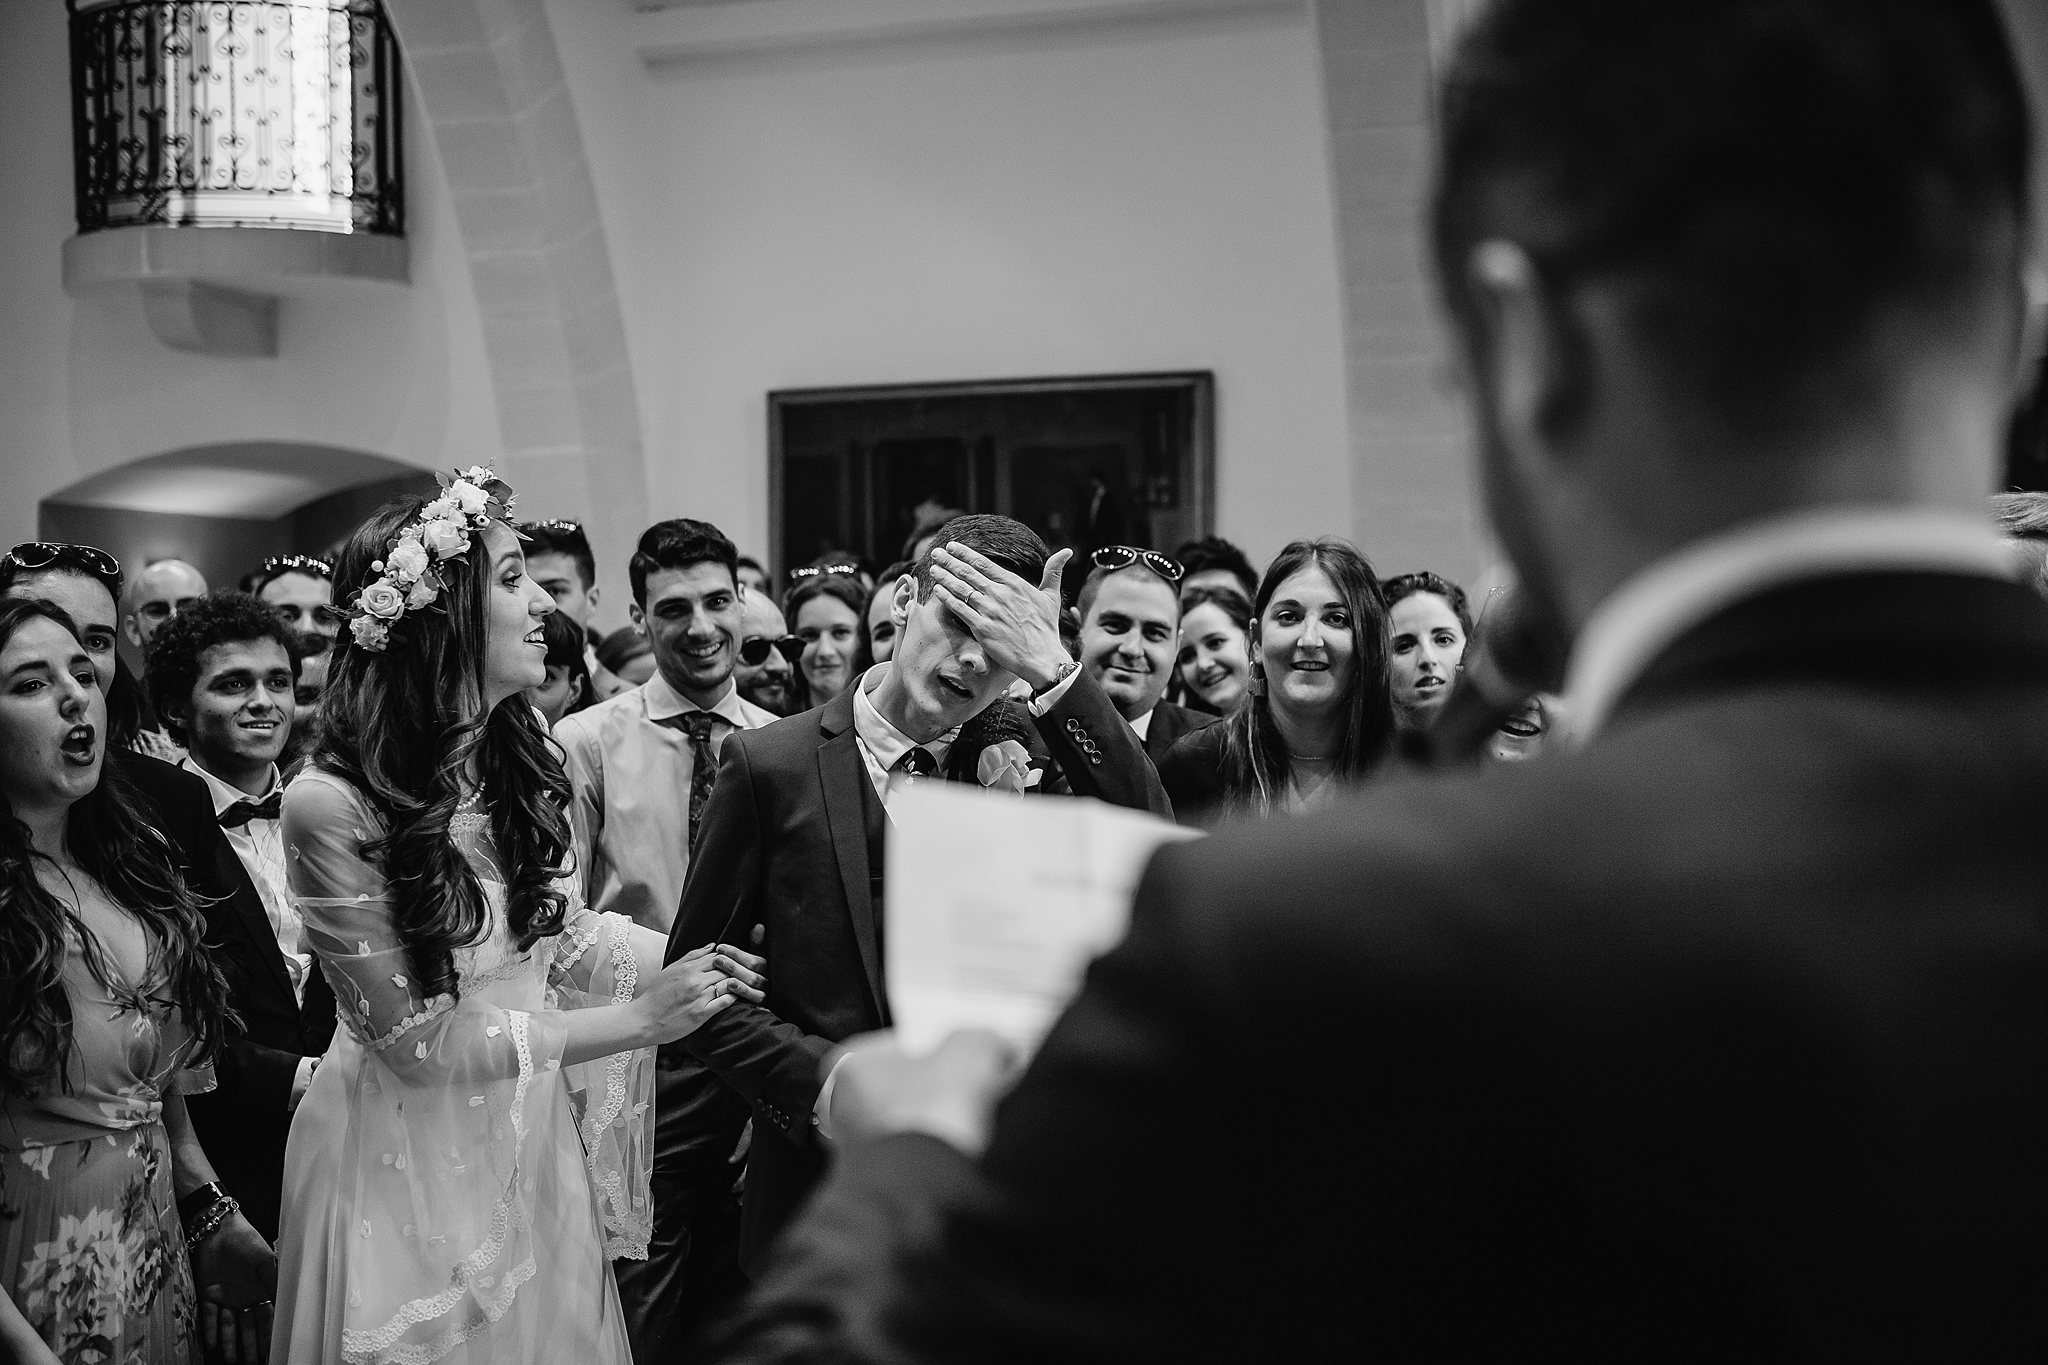 groom sweating with excited nerves during ceremony- photo by Shane P Watts Photography